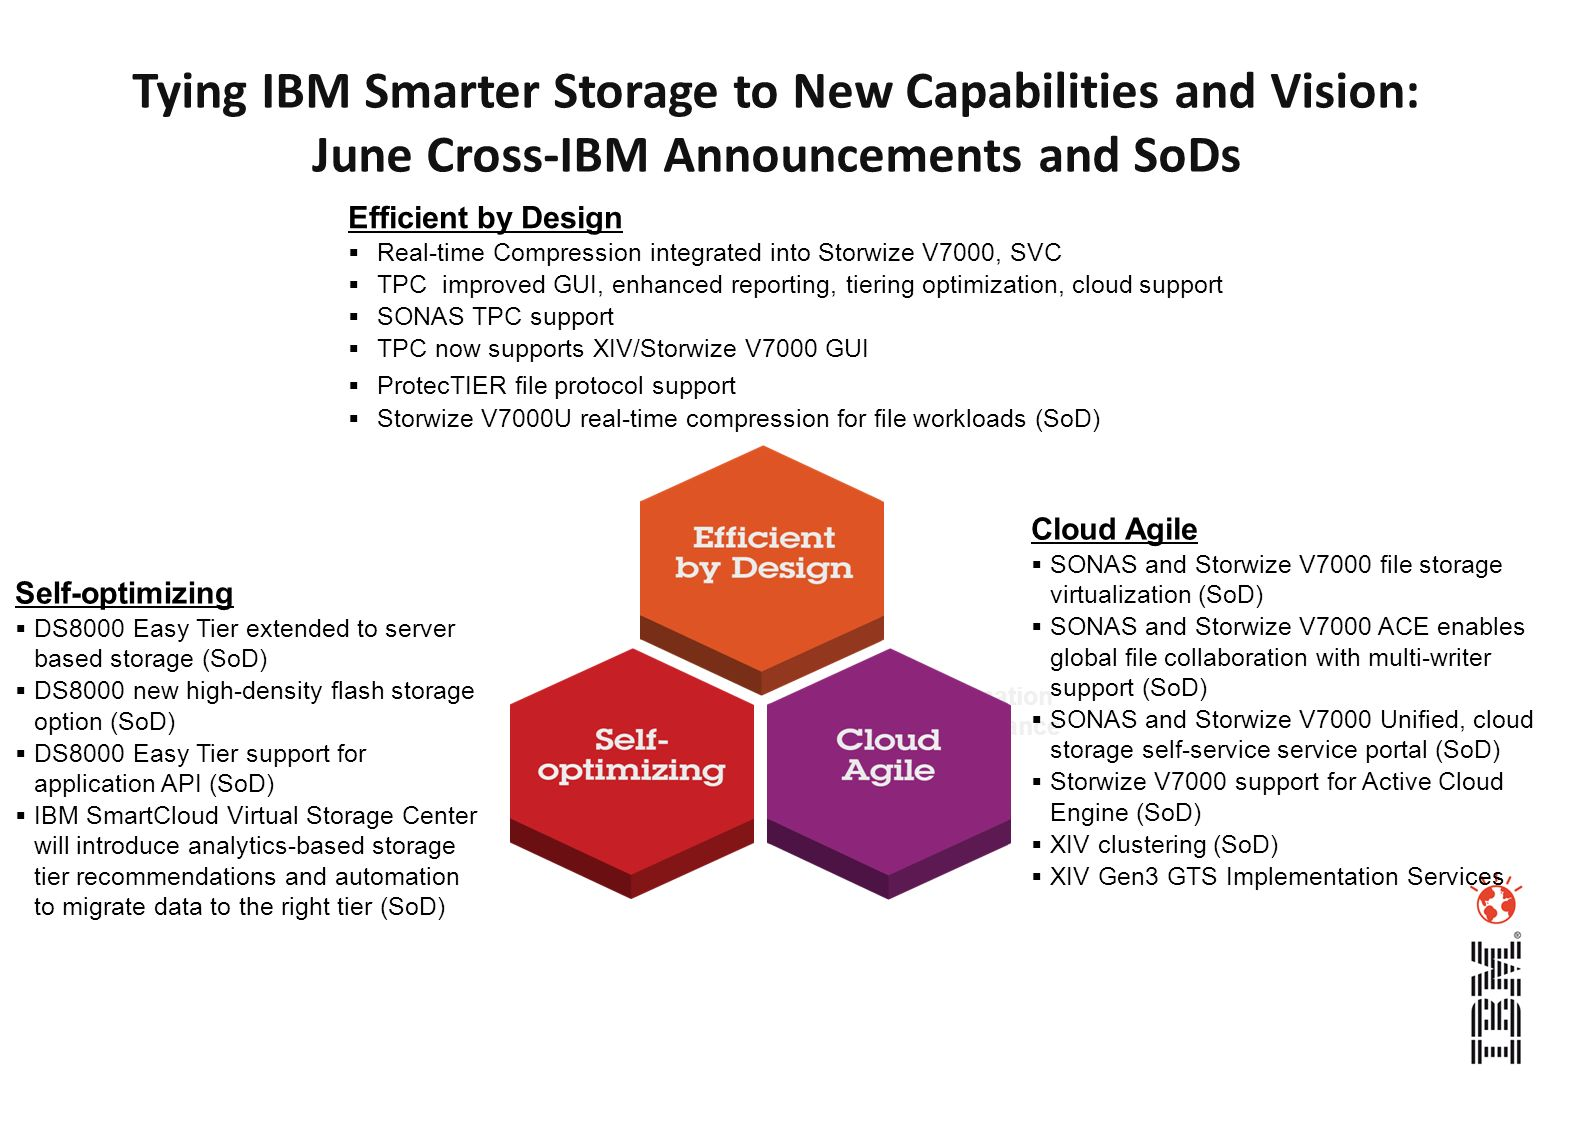 Tying IBM Smarter Storage to New Capabilities and Vision: June Cross-IBM Announcements and SoDs